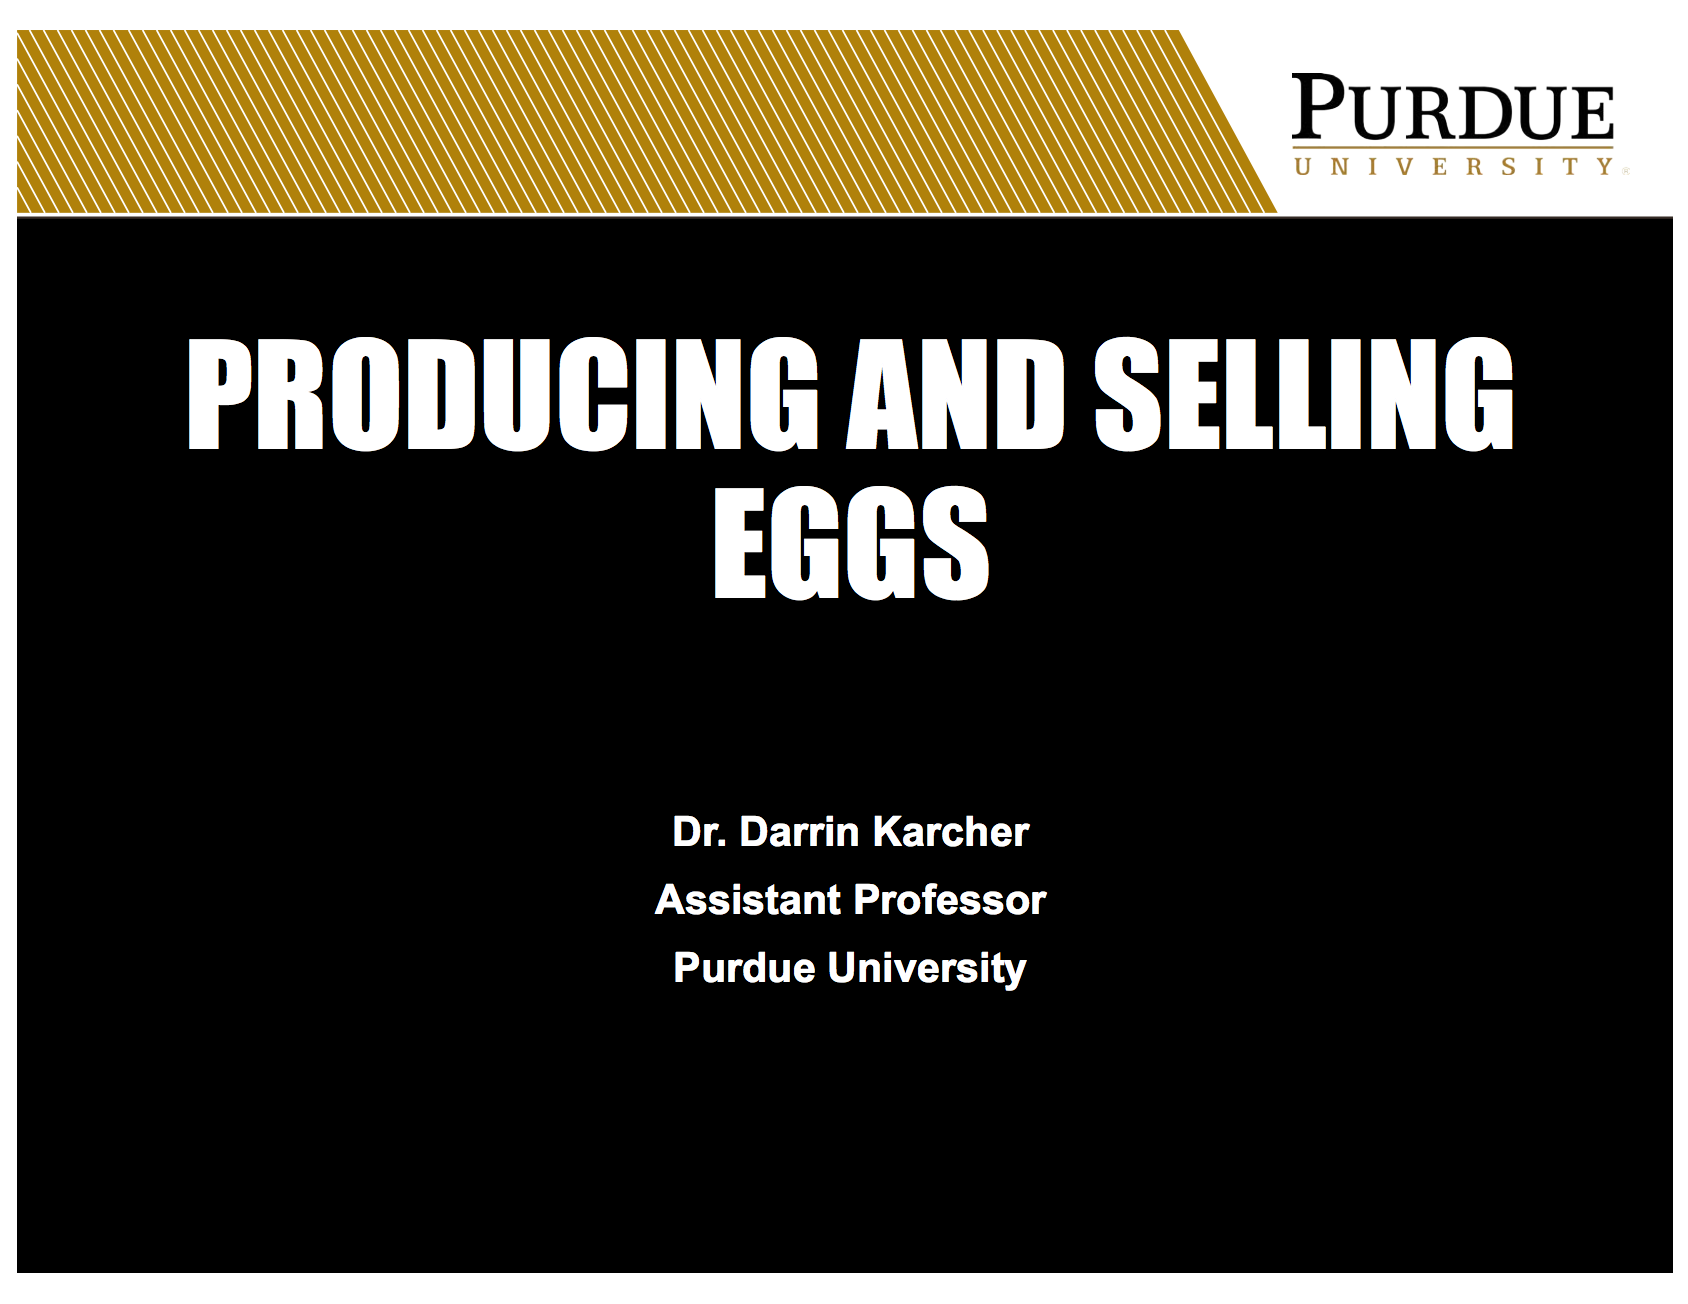 Producing and selling eggs